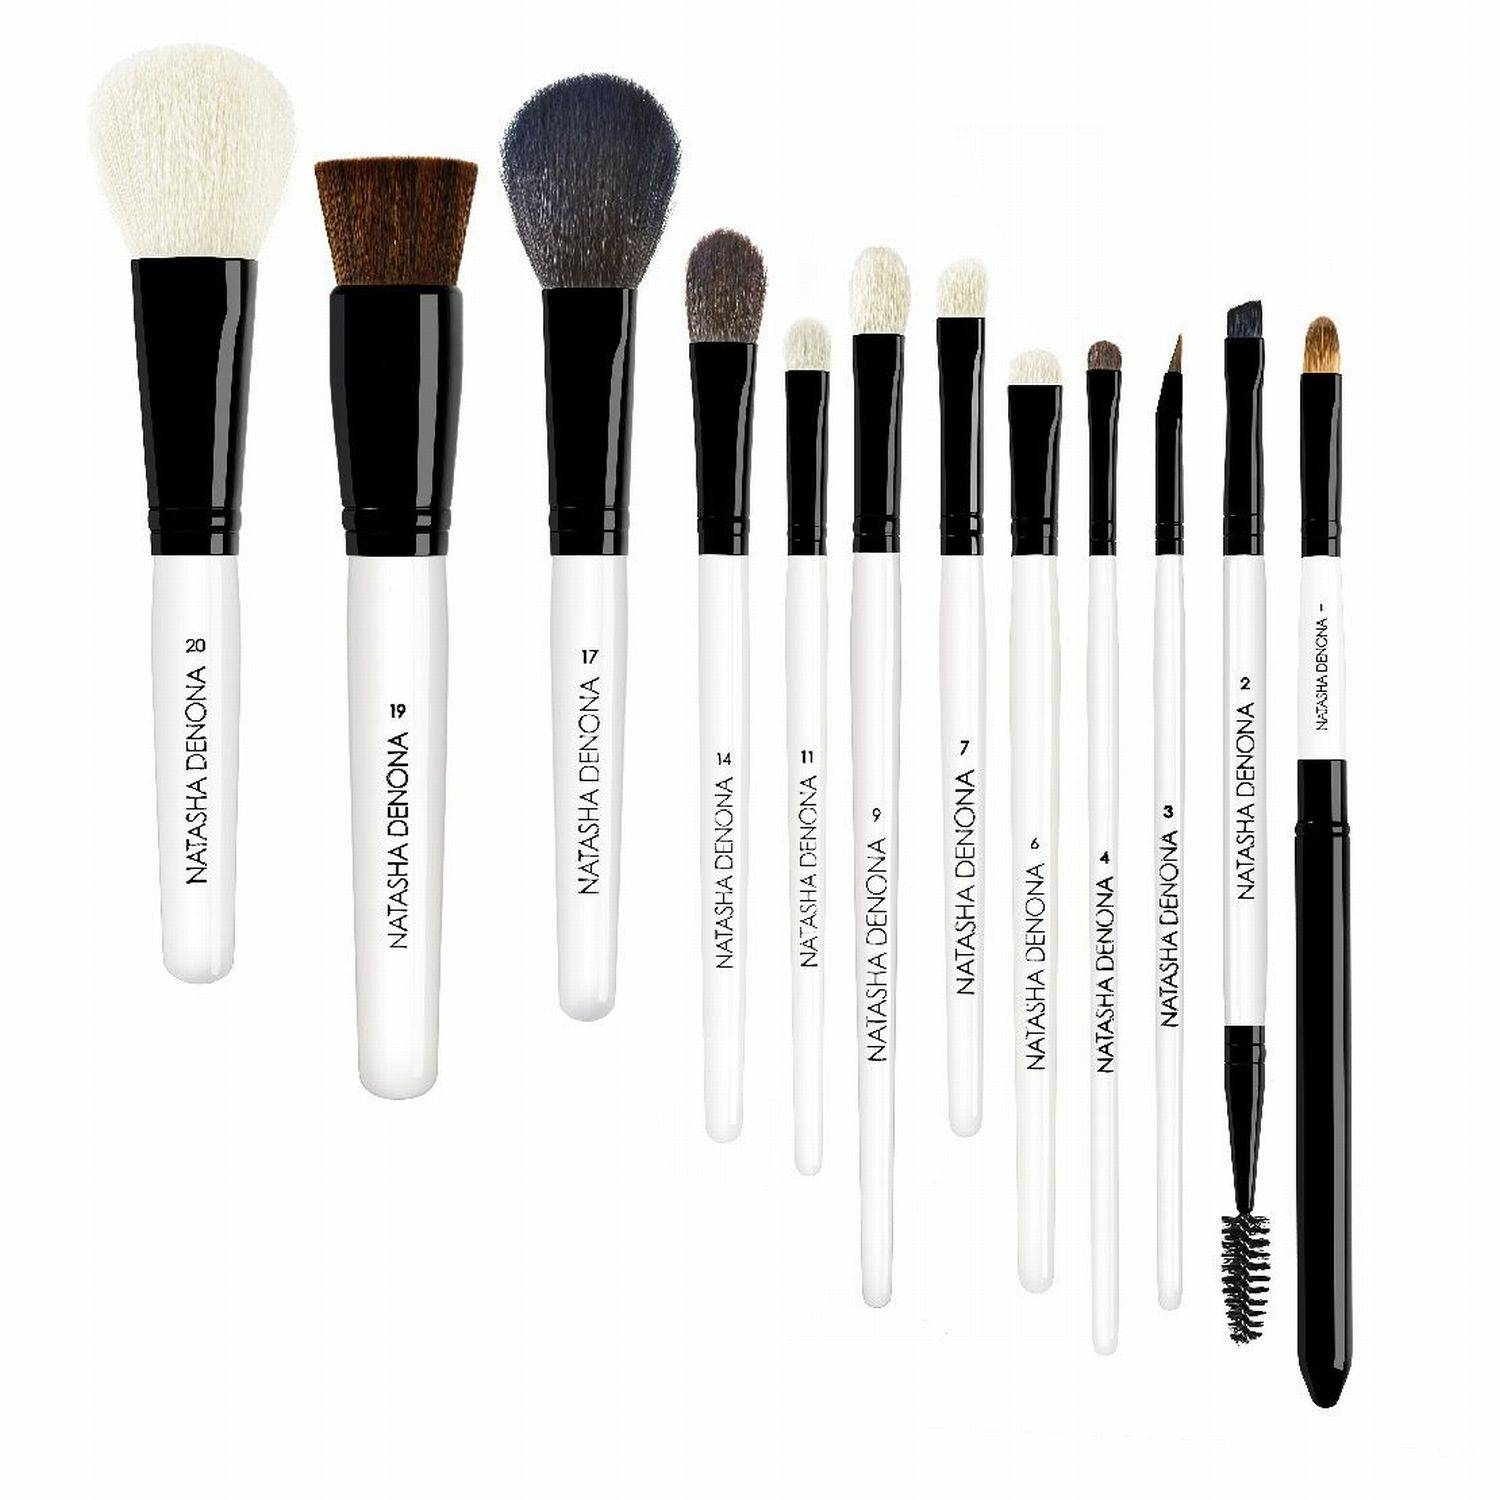 NATASHA DENONA Brush Set Basic Set de 12 brochas y pinceles